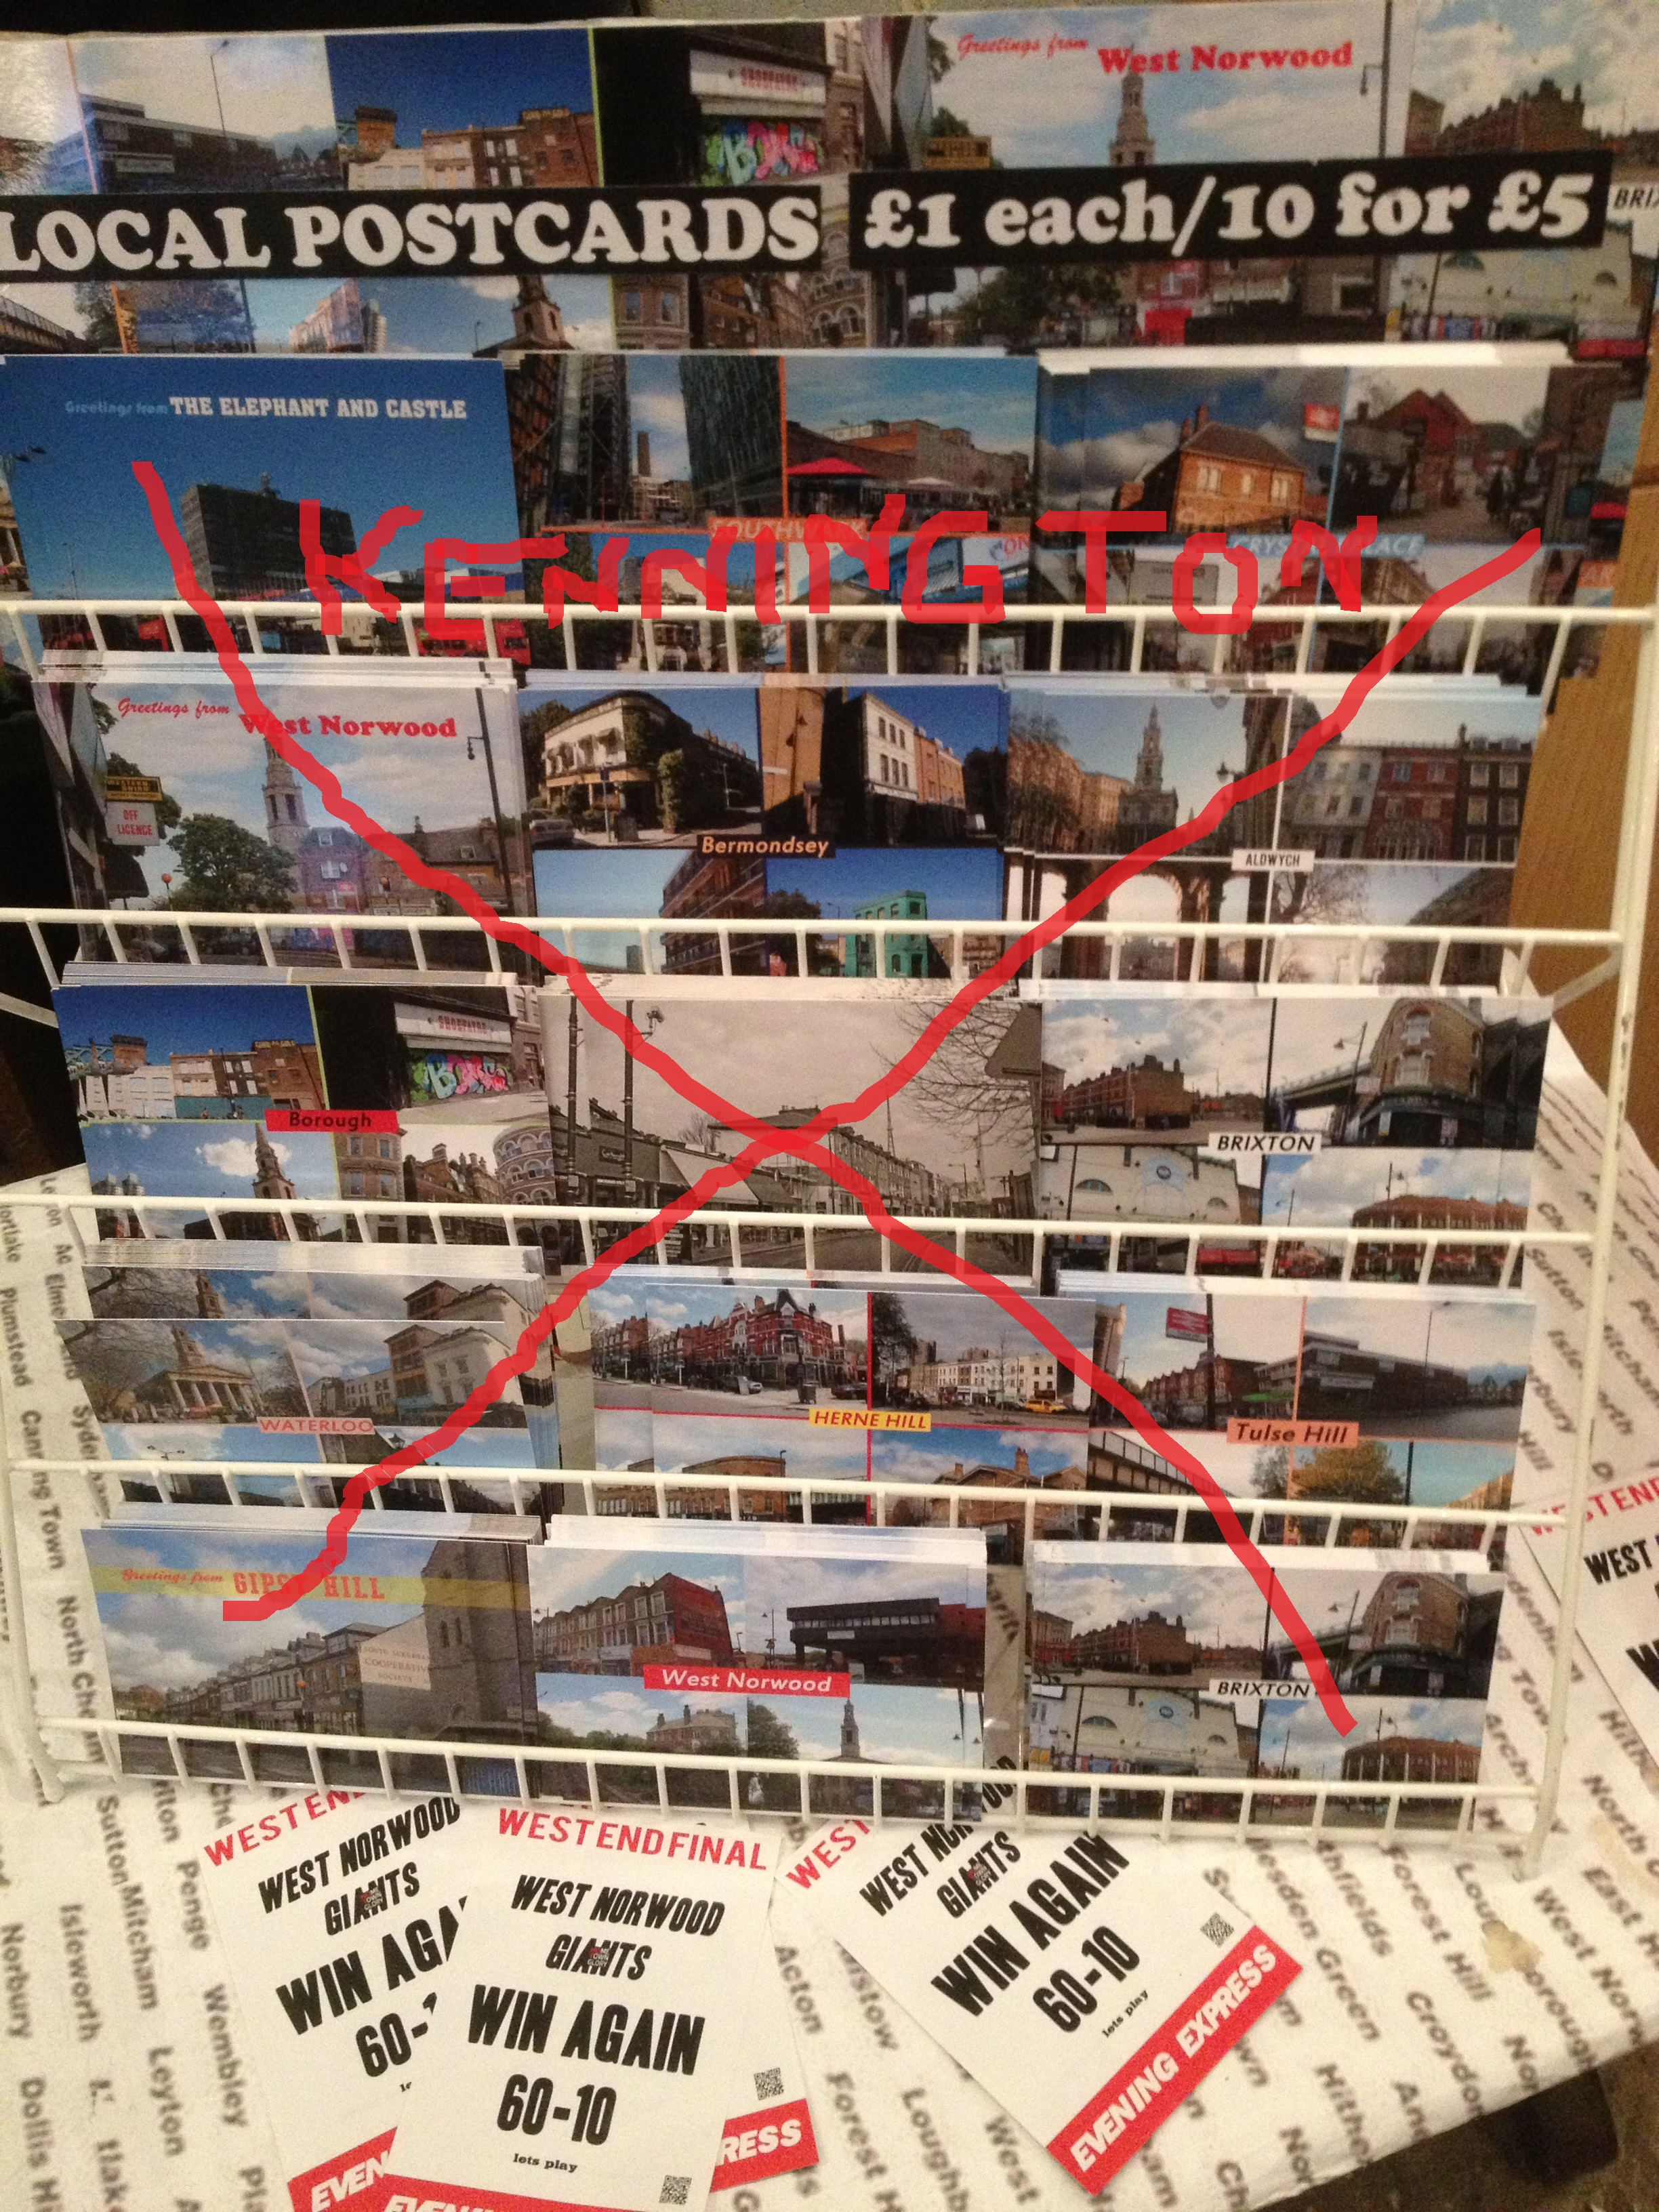 Kennington vs local postcards, Lassco Maltby Street - kenningtonrunoff.com